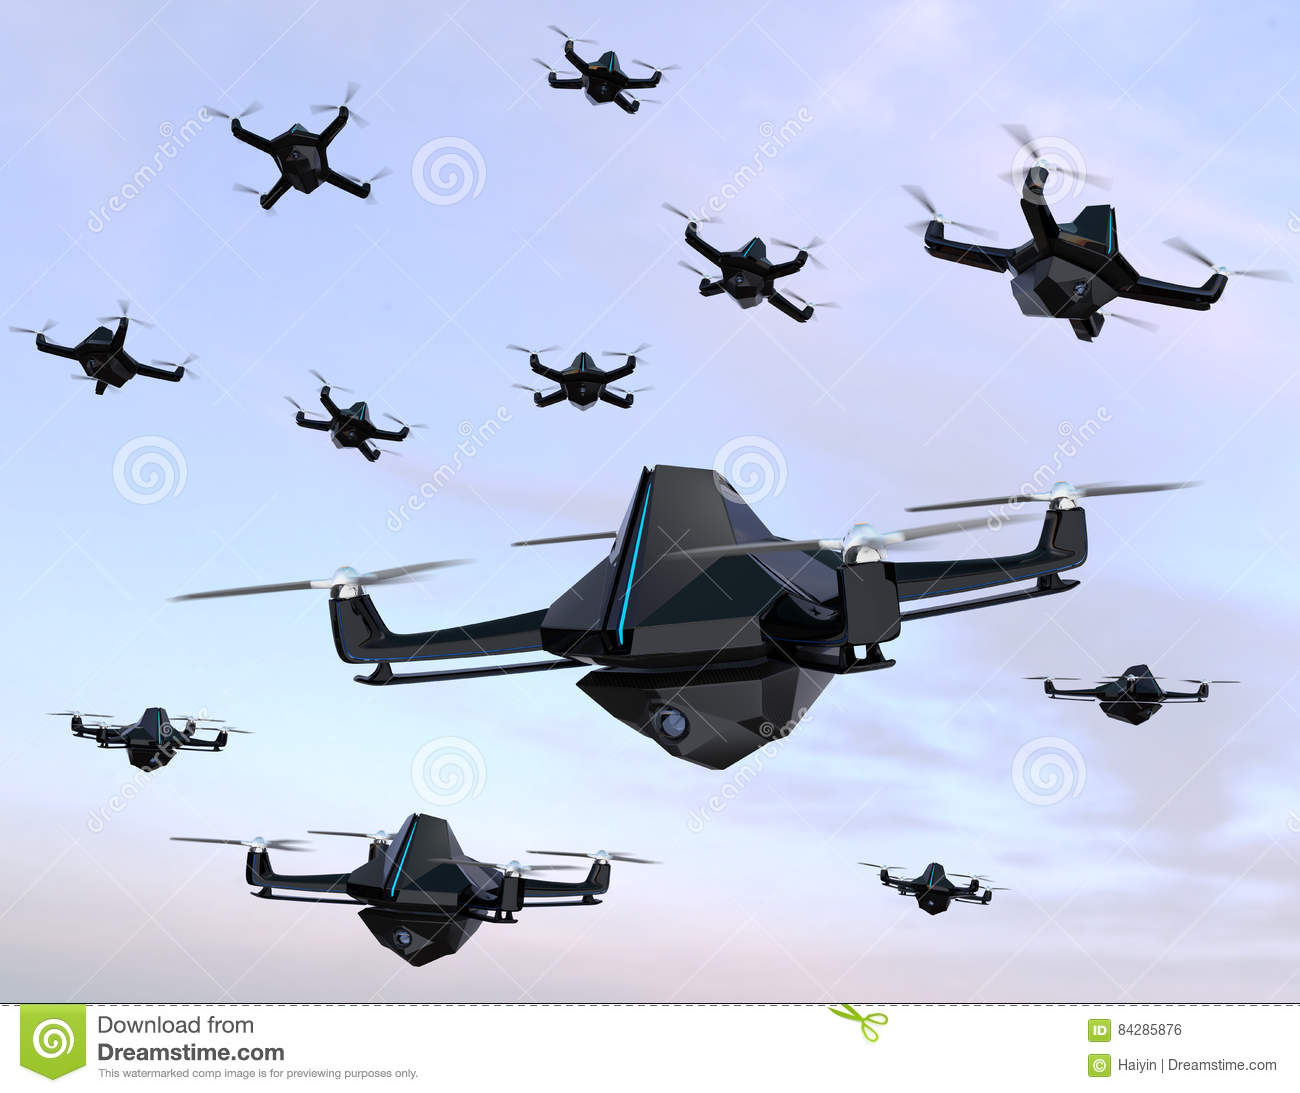 control remote airplane with Stock Illustration Swarm Security Drones Surveillance Camera Flying Sky D Rendering Image Image84285876 on Wholesale F18 Hor  Model besides Air Ambulance Transparent Background moreover Airbus Concorde Patent New York London 1 Hour in addition Flight Controls as well Helicopterhobby wordpress.